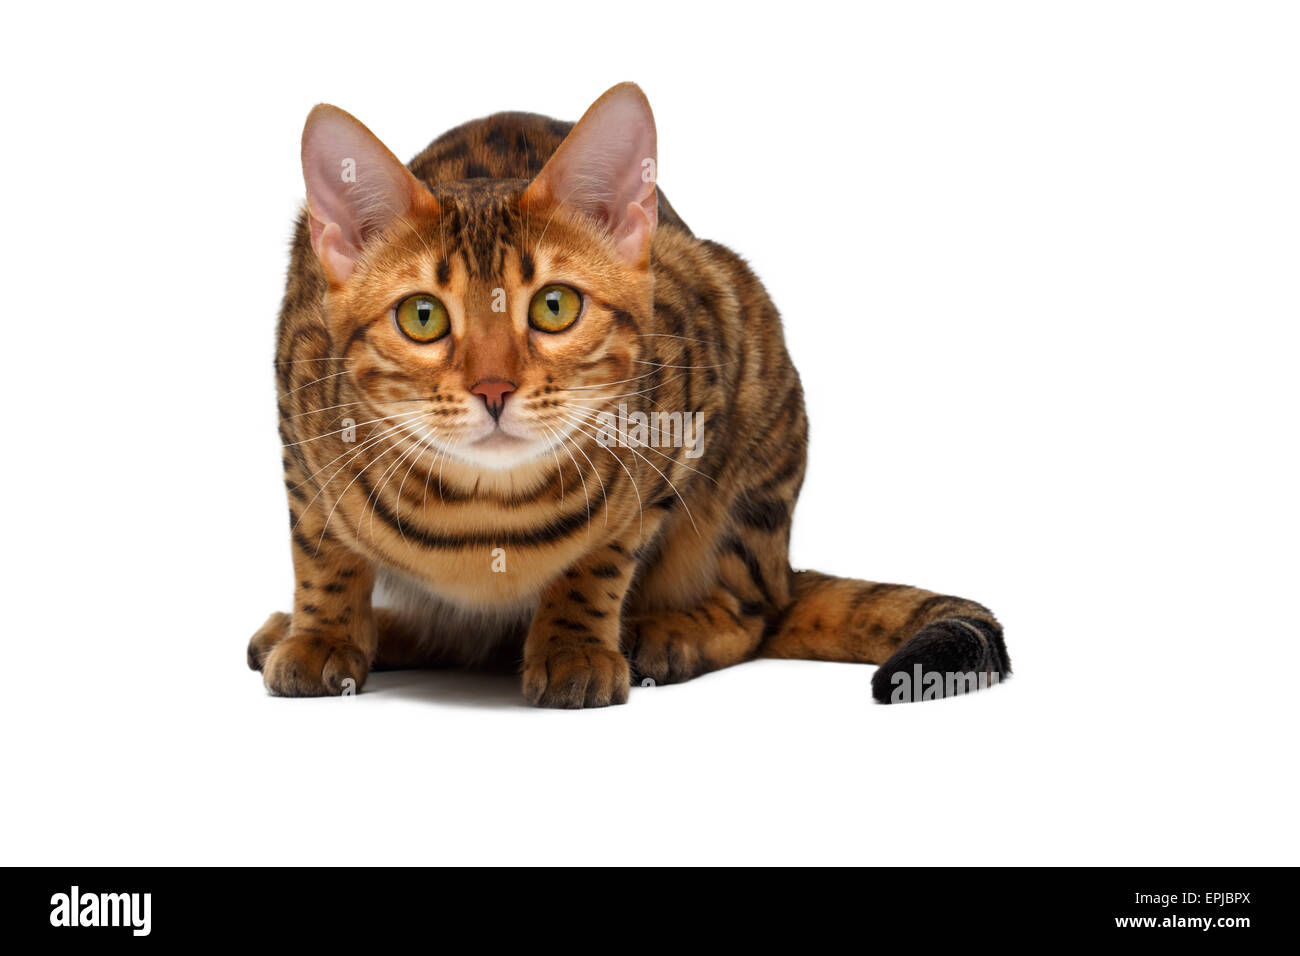 bengal cat  crouched - Stock Image